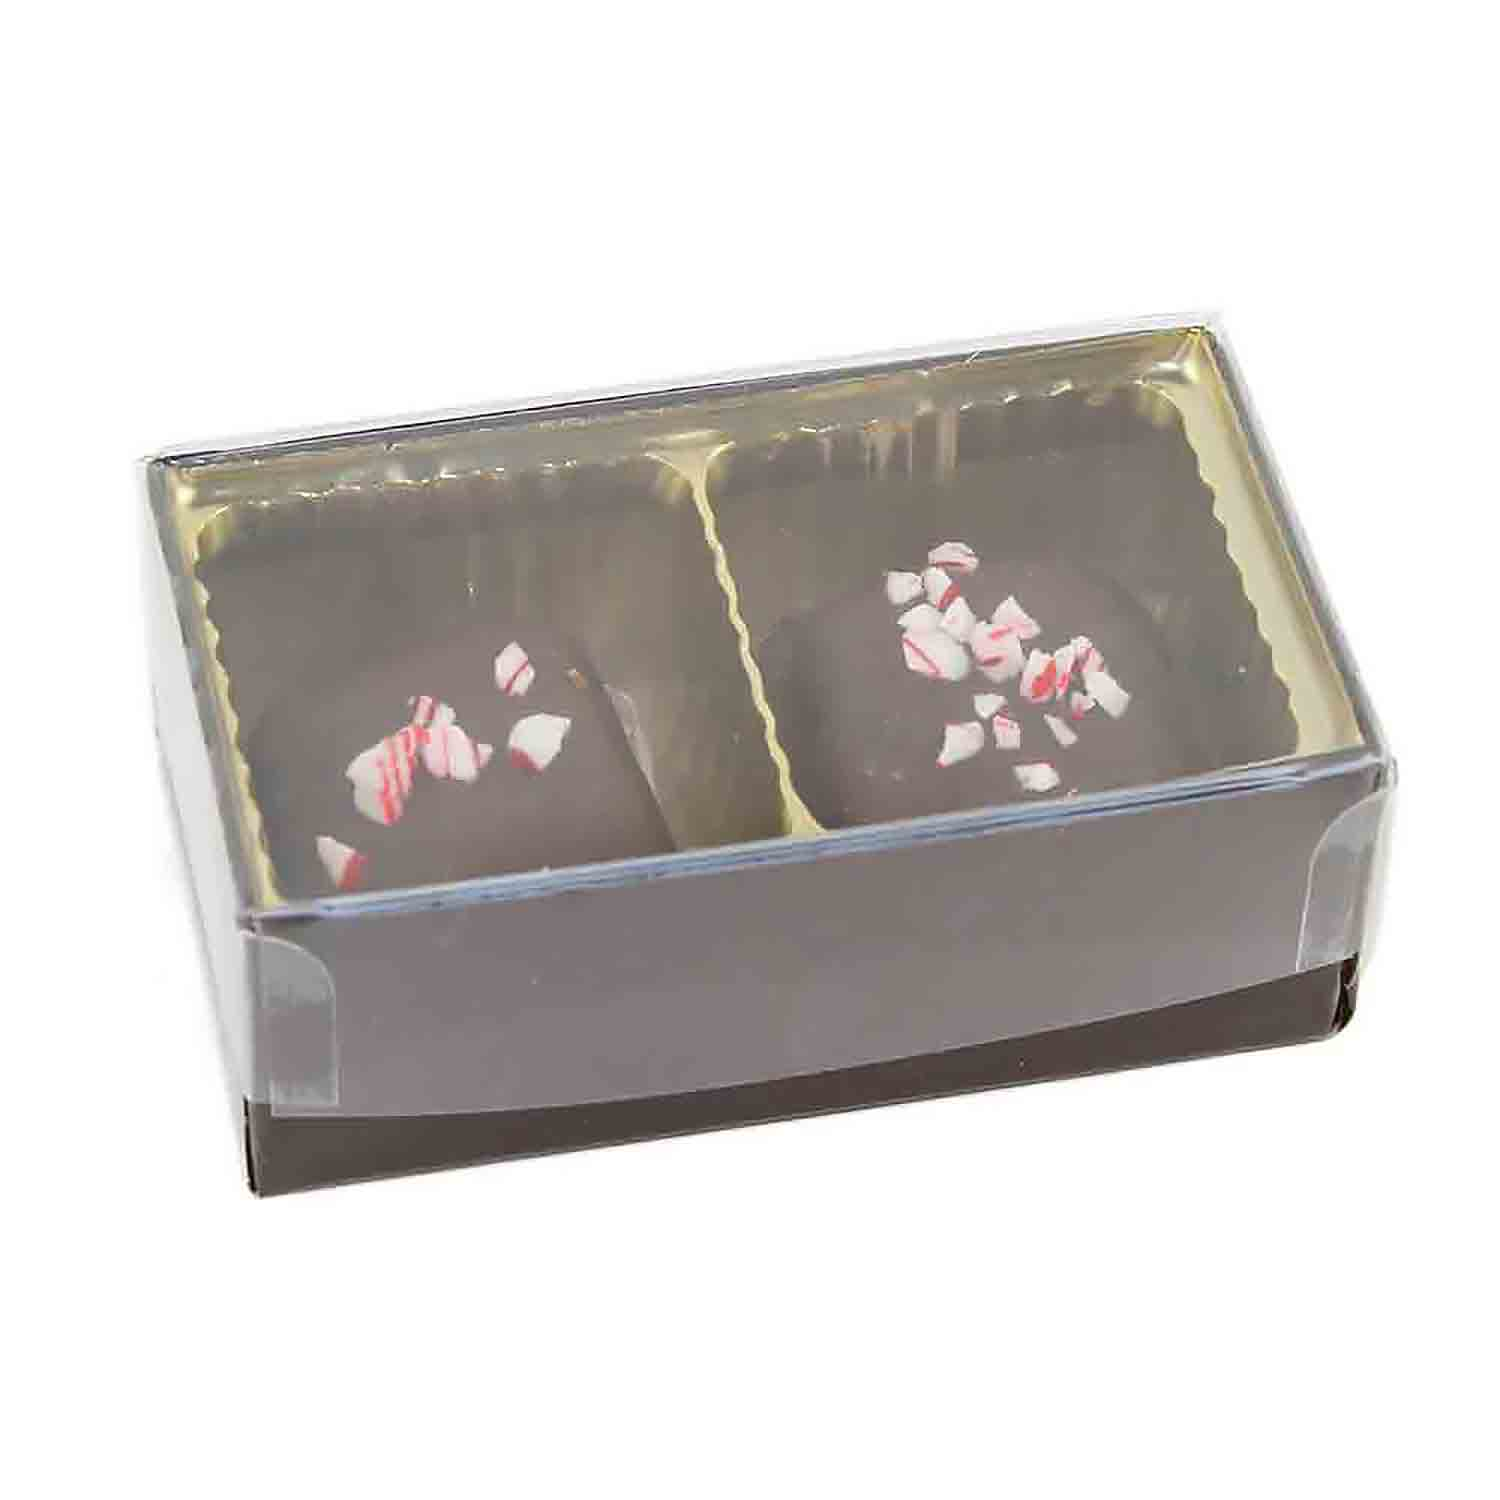 2 Cavity Gold Insert Candy Box with Clear Lid